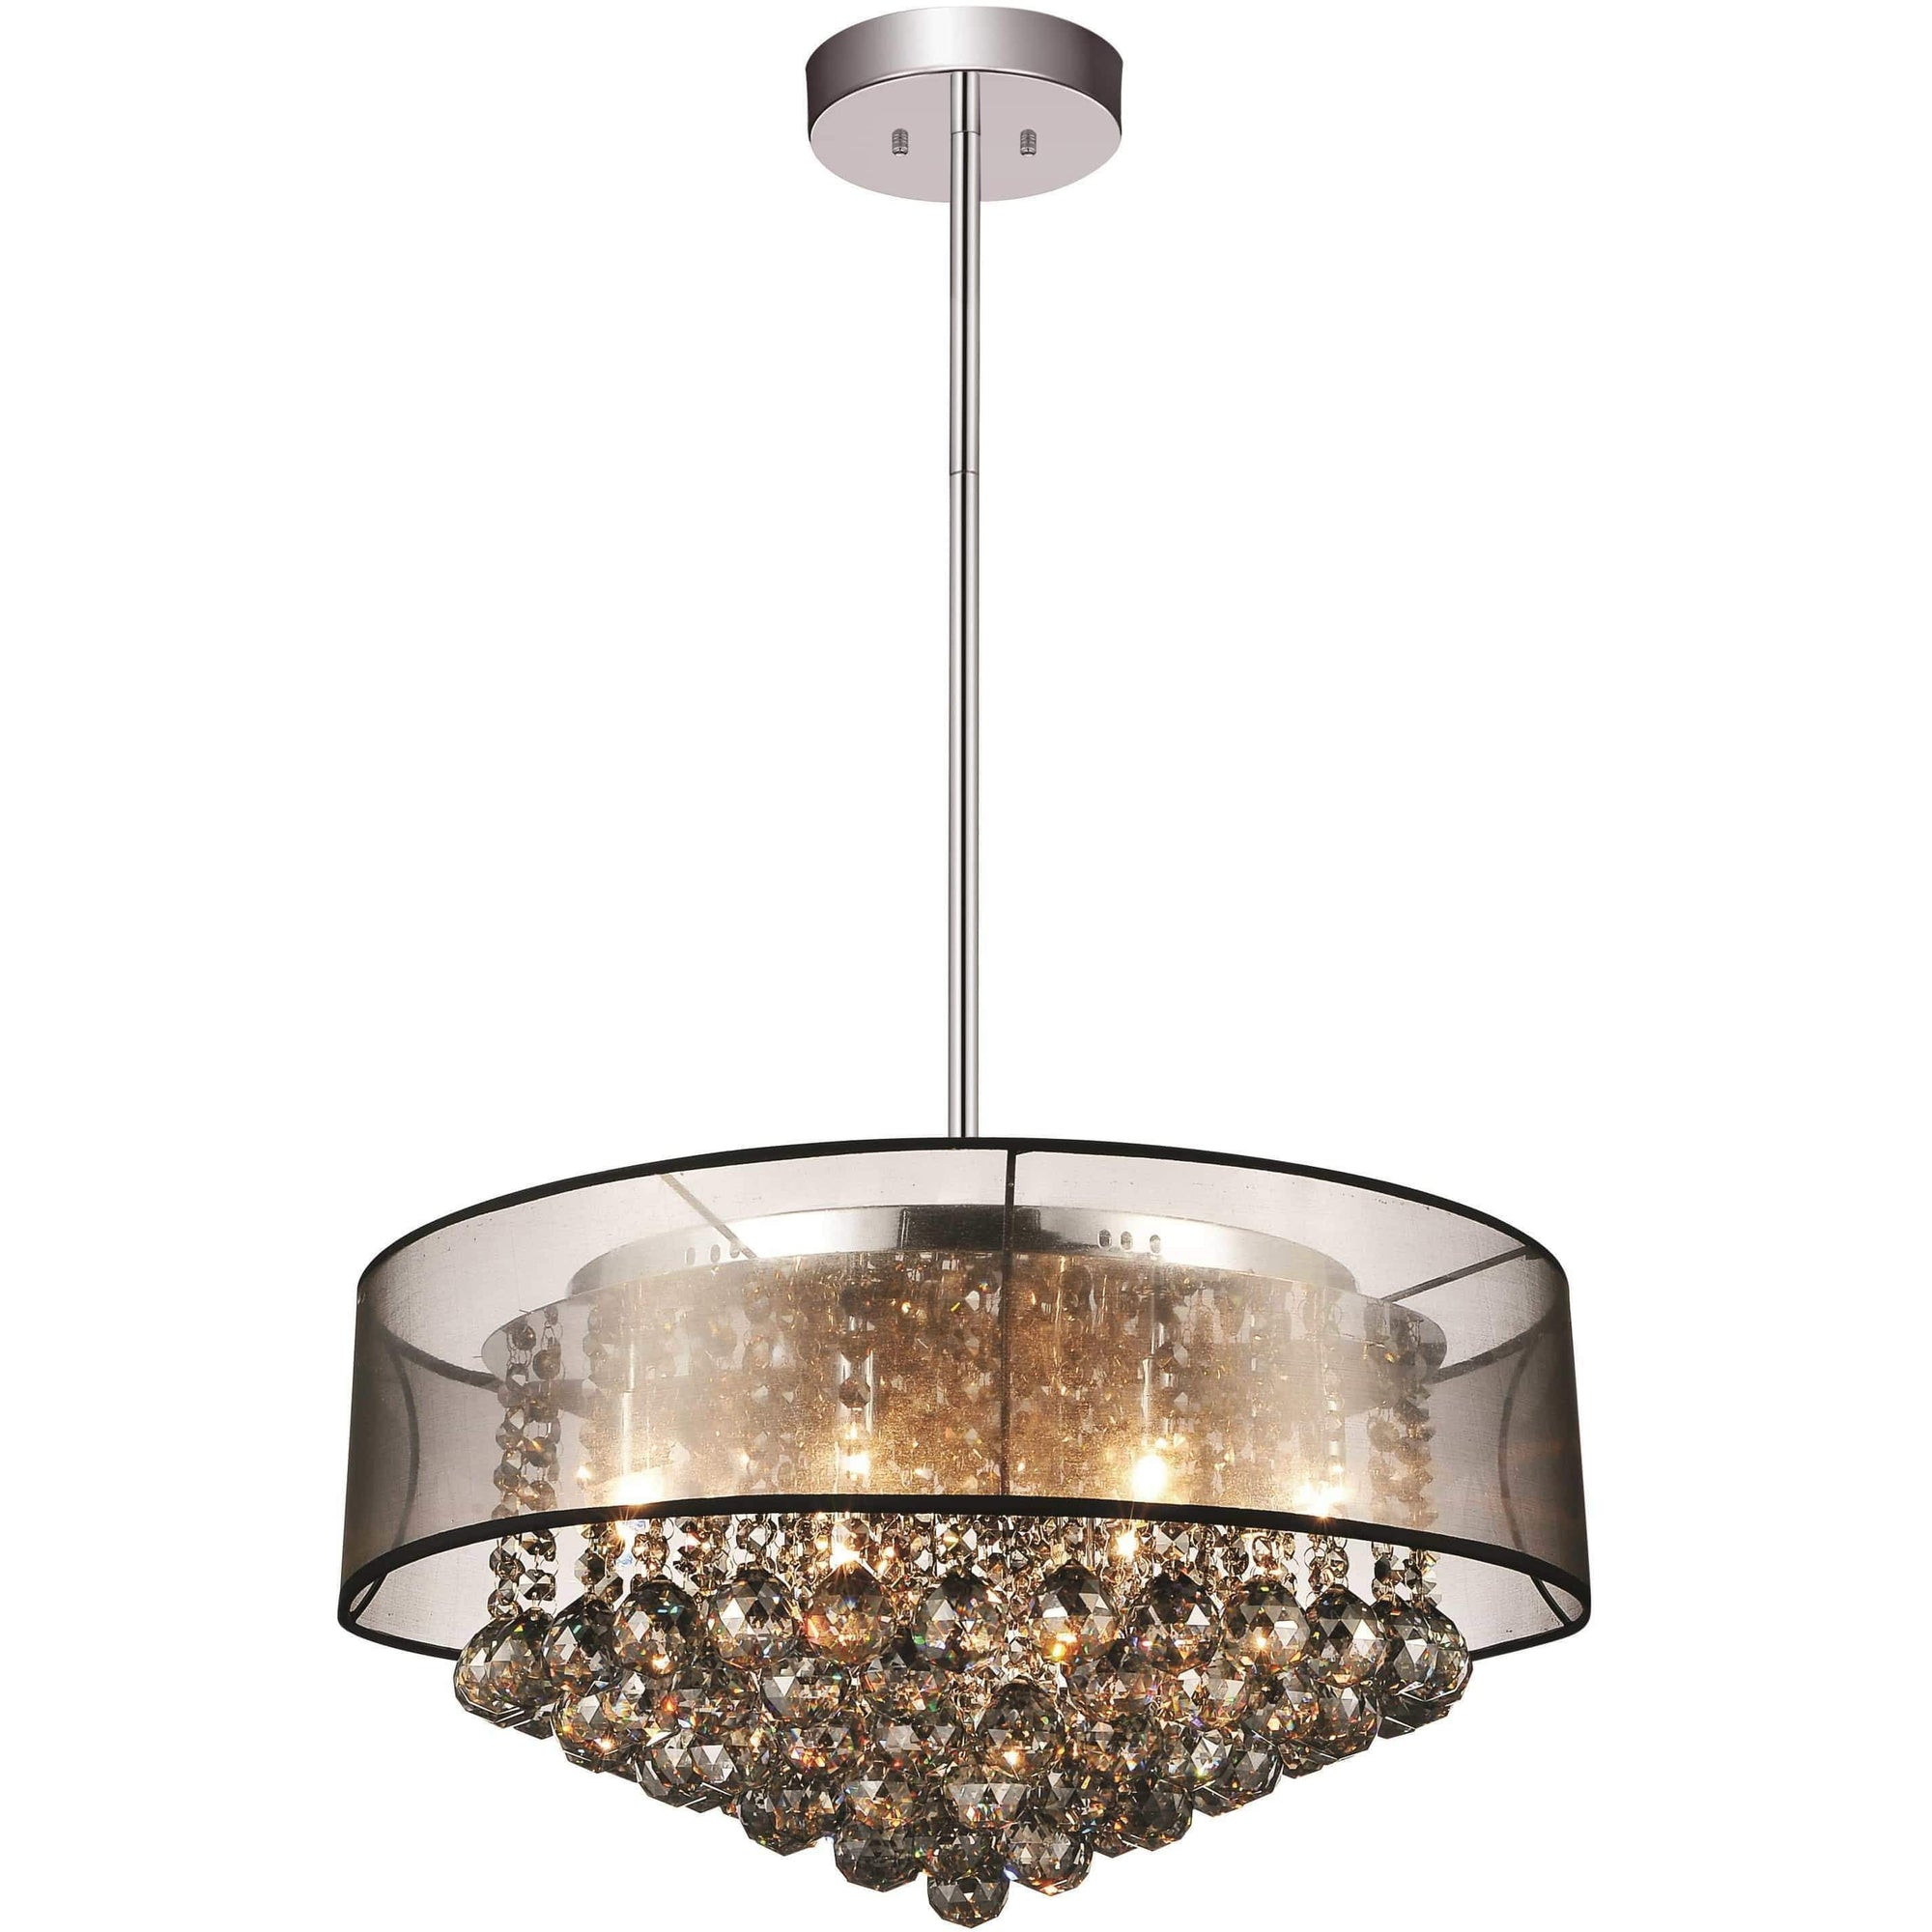 CWI Lighting Chandeliers Chrome / K9 Smoke Radiant 12 Light Drum Shade Chandelier with Chrome finish by CWI Lighting 5062P24C (Smoke + B)